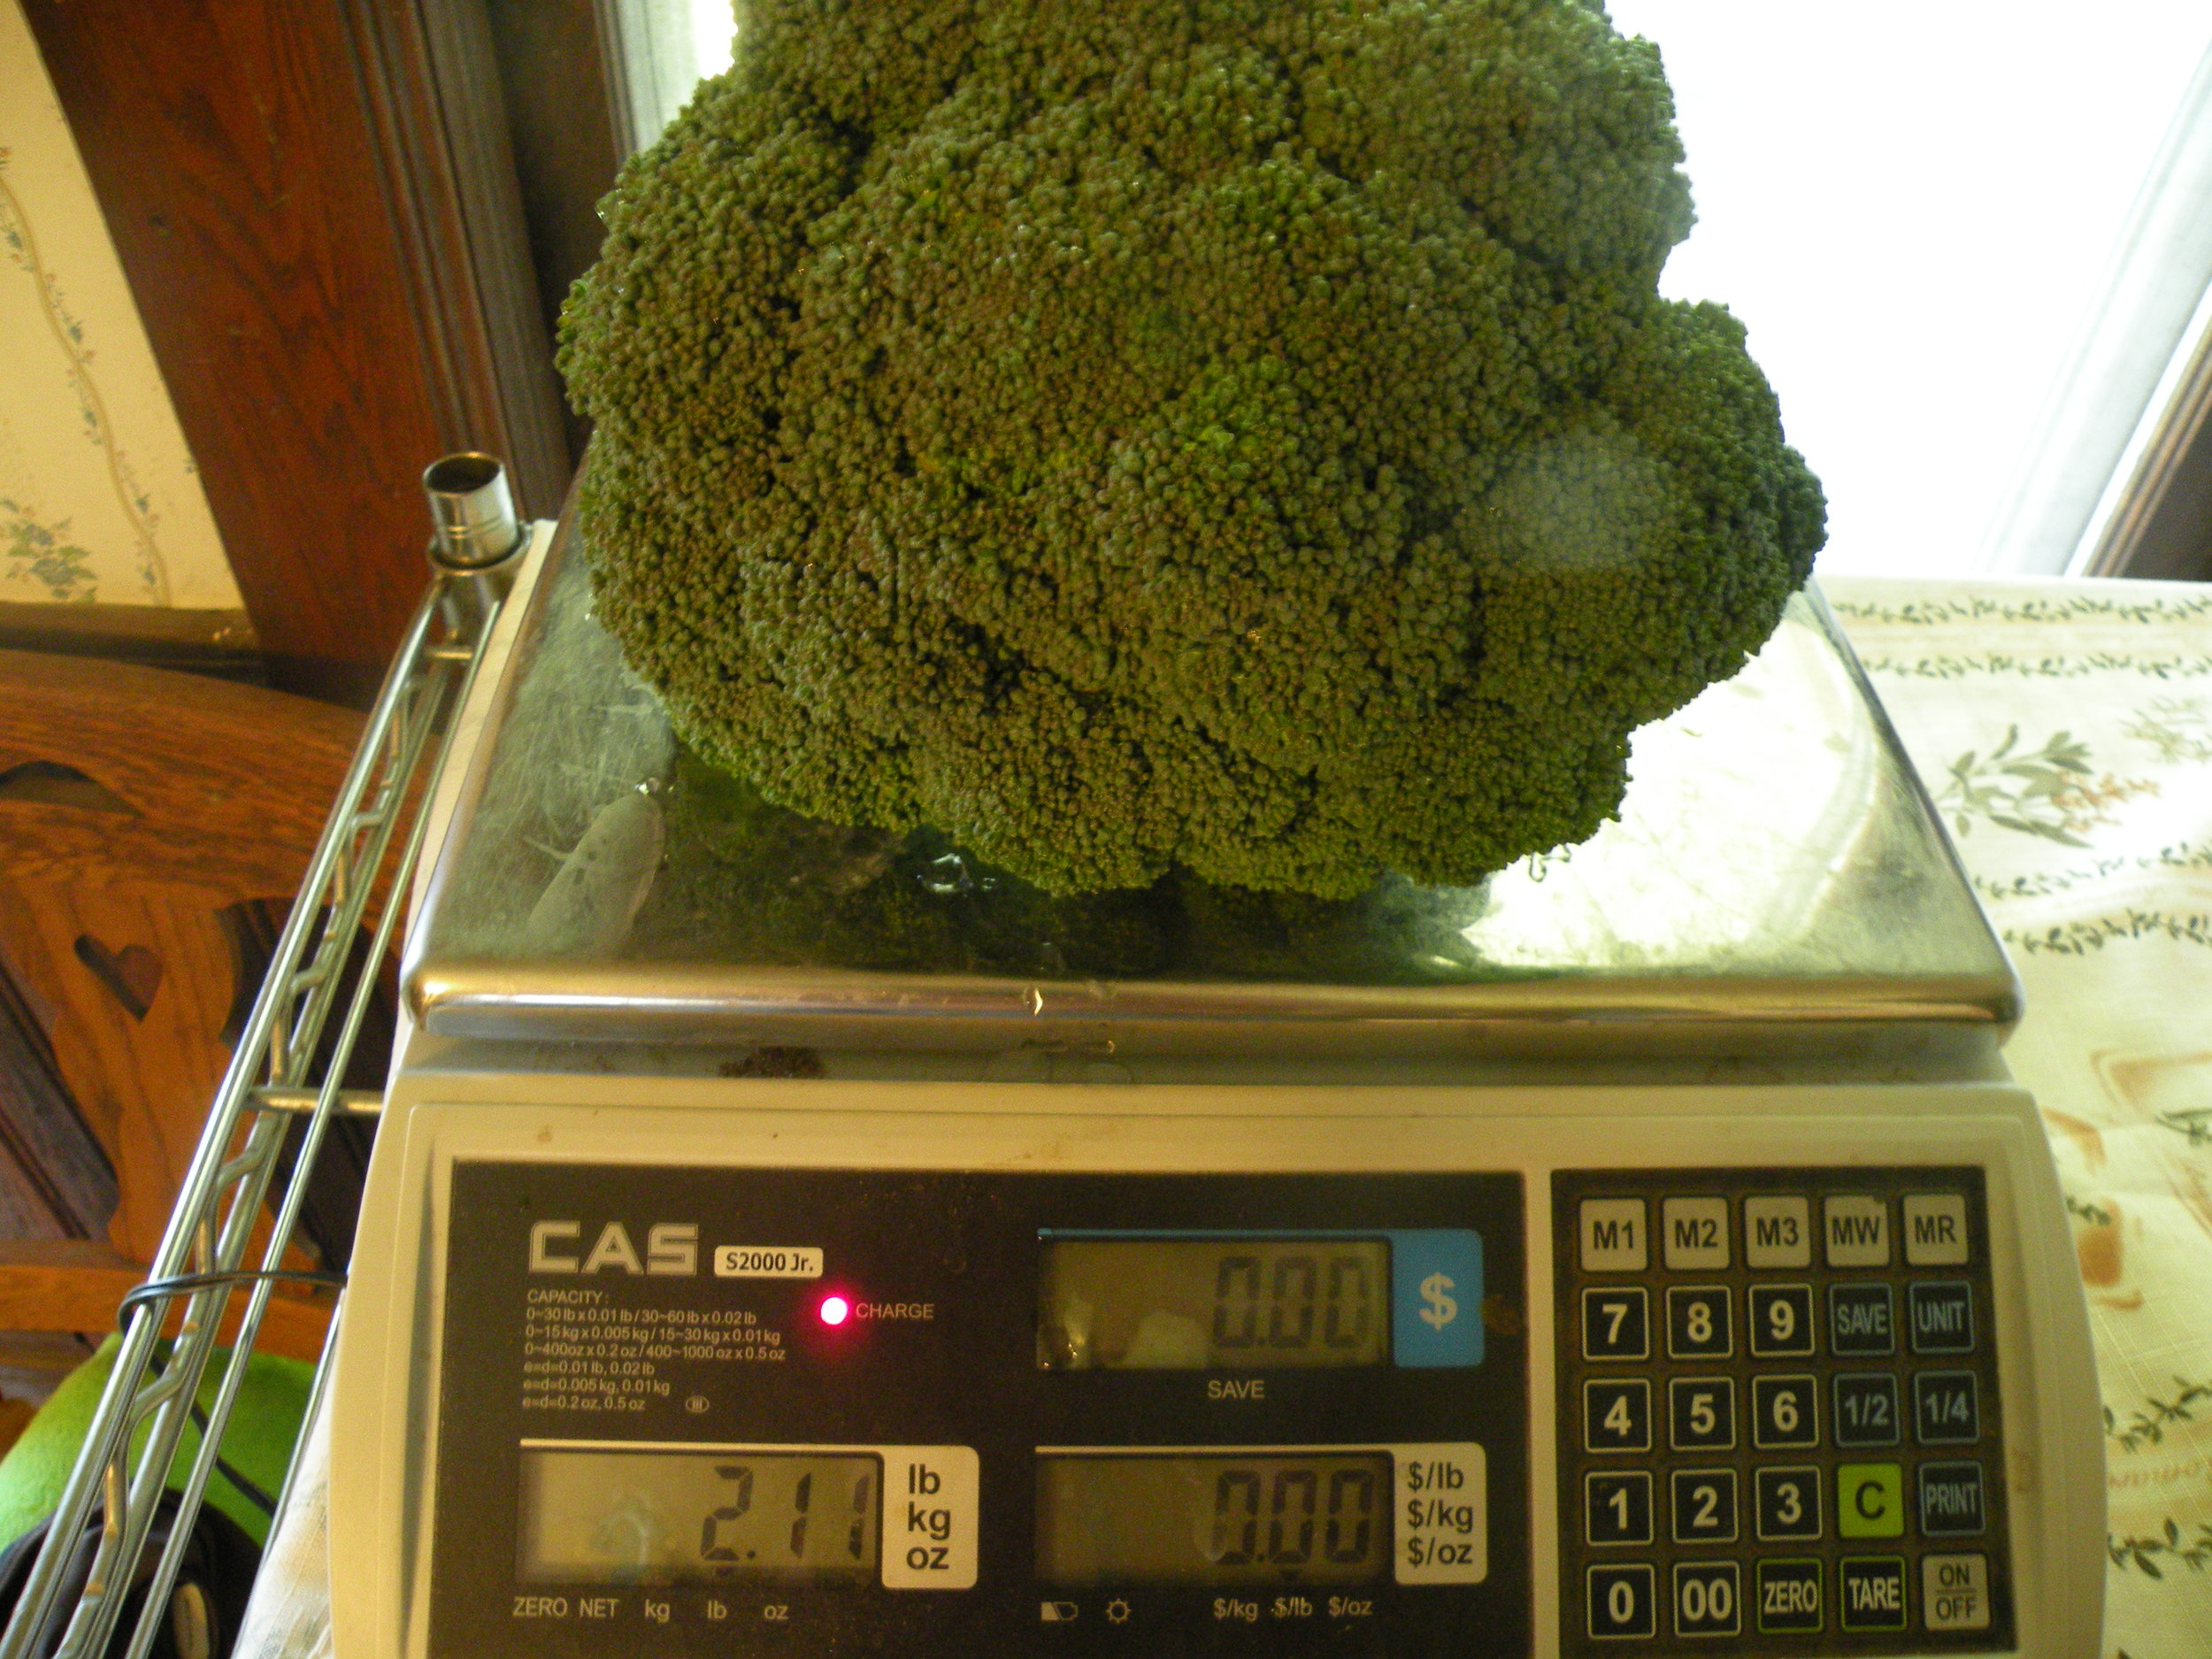 Broccoli made a comeback late in the season, though overall pounds were down from previous years. Photo by Rob McClure